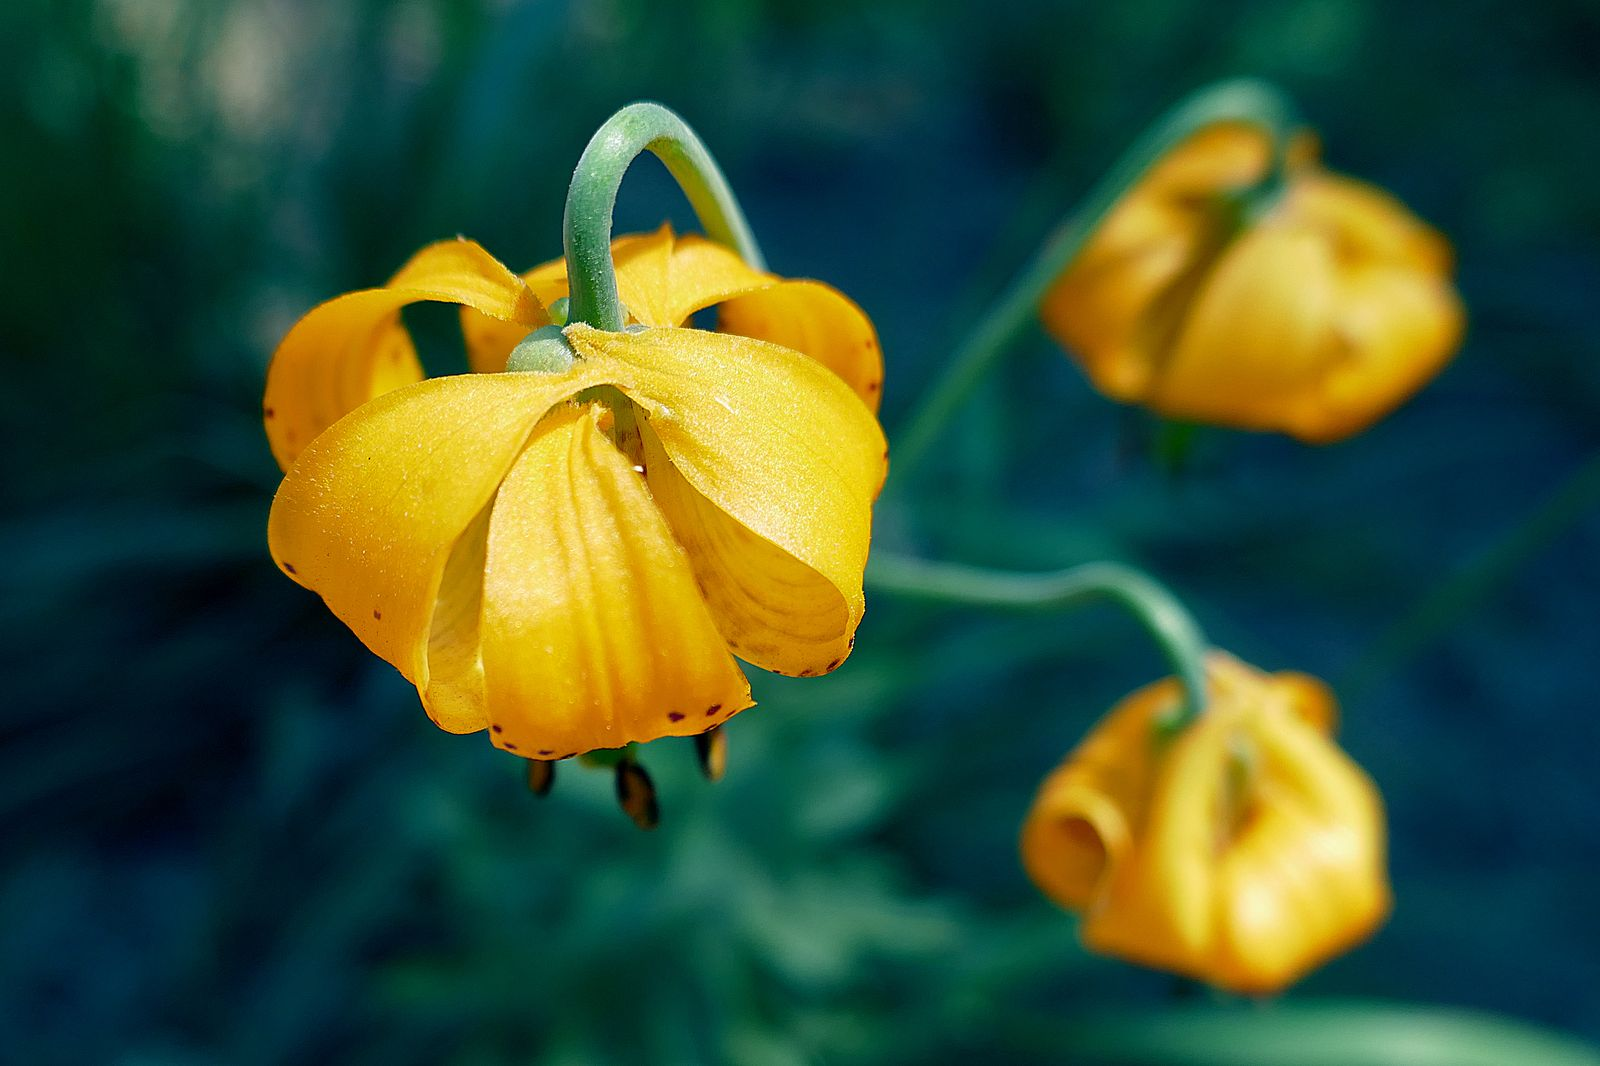 Columbian Lily – Lily Family